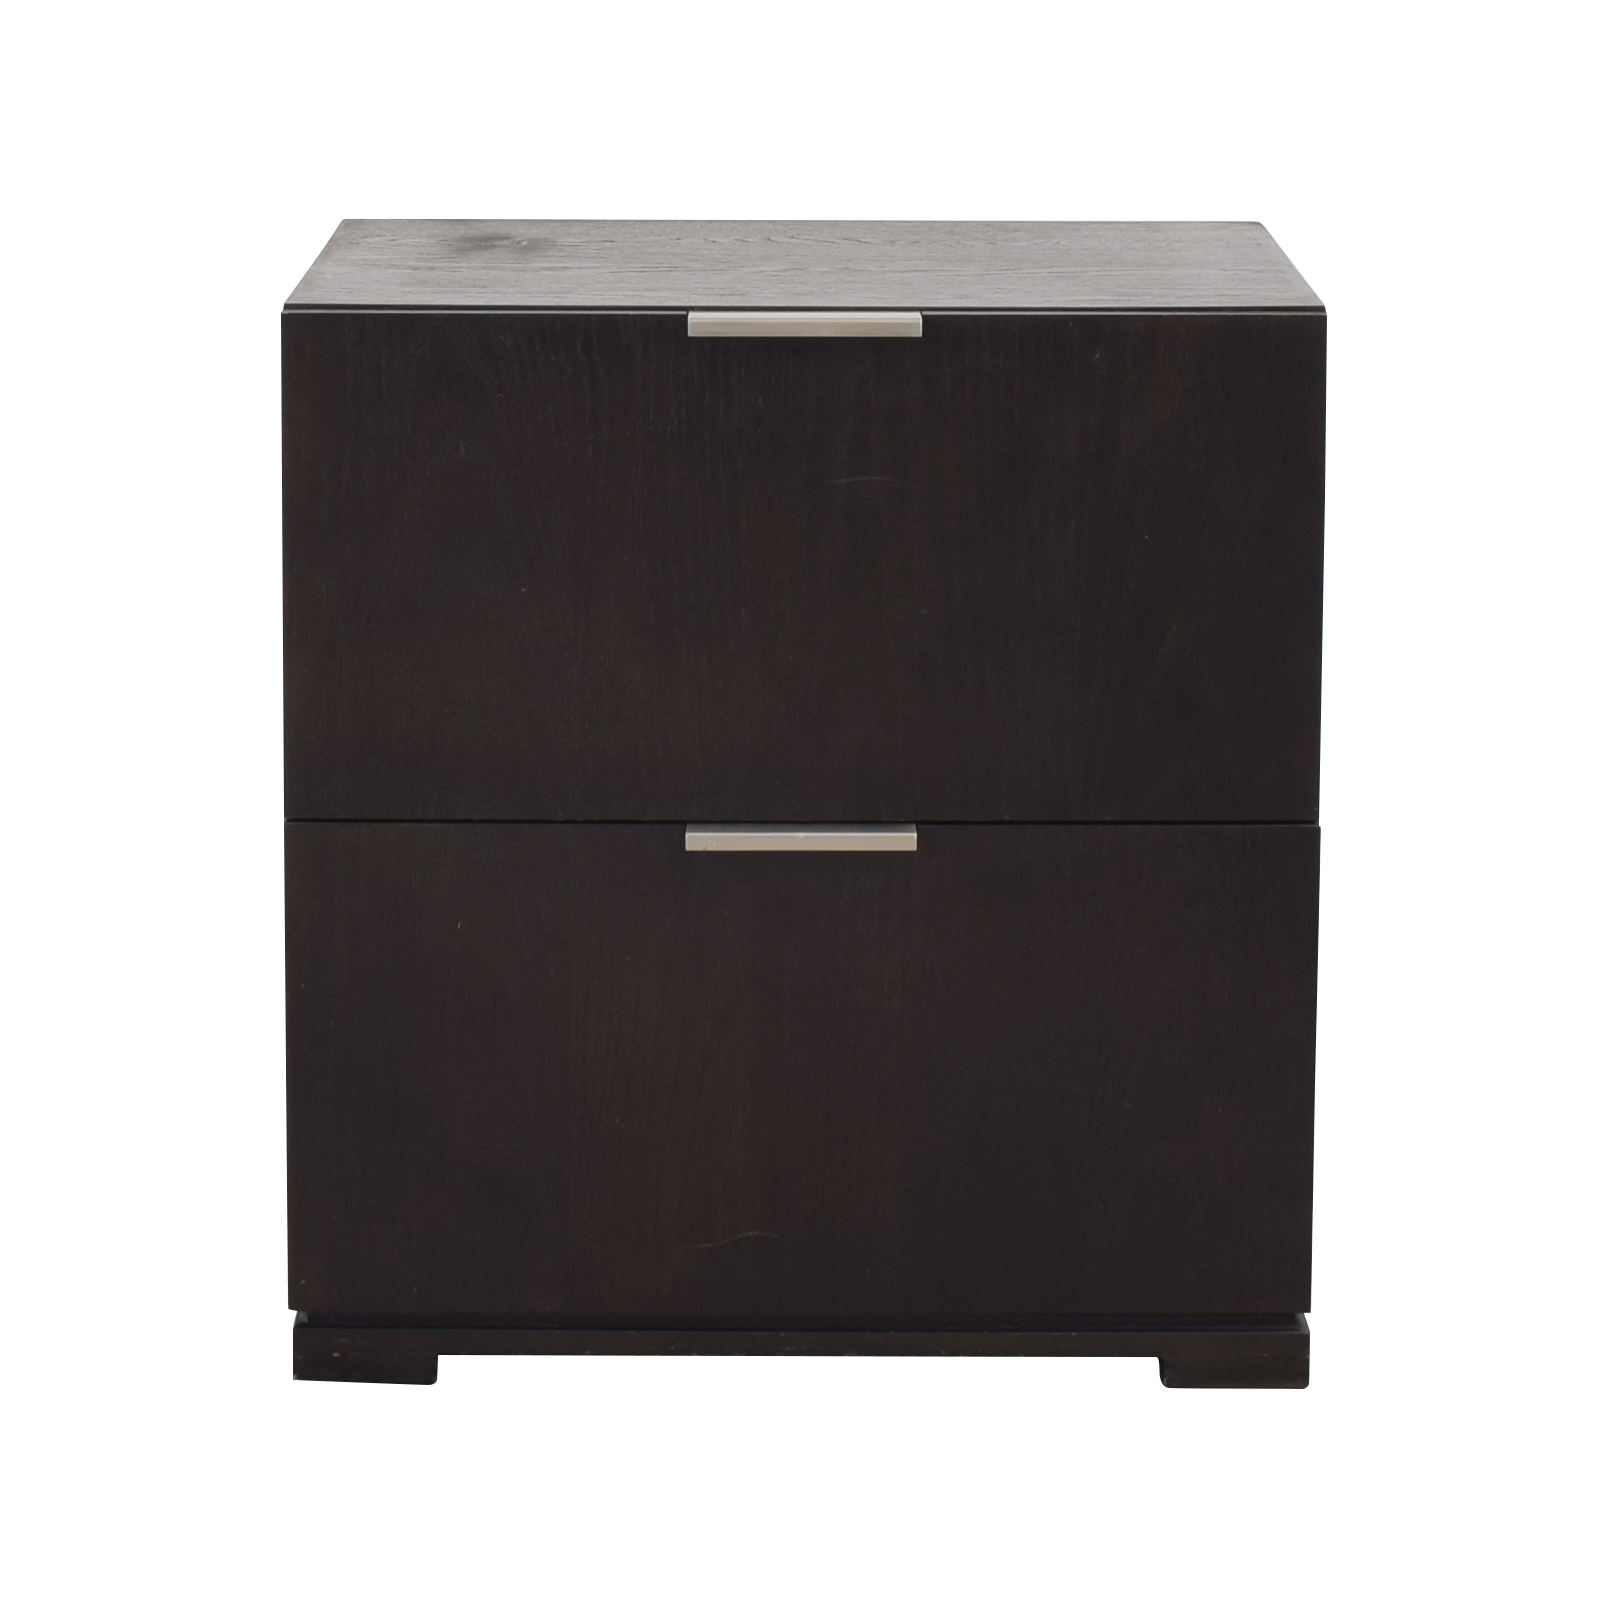 West Elm West Elm Two Drawer Dresser price